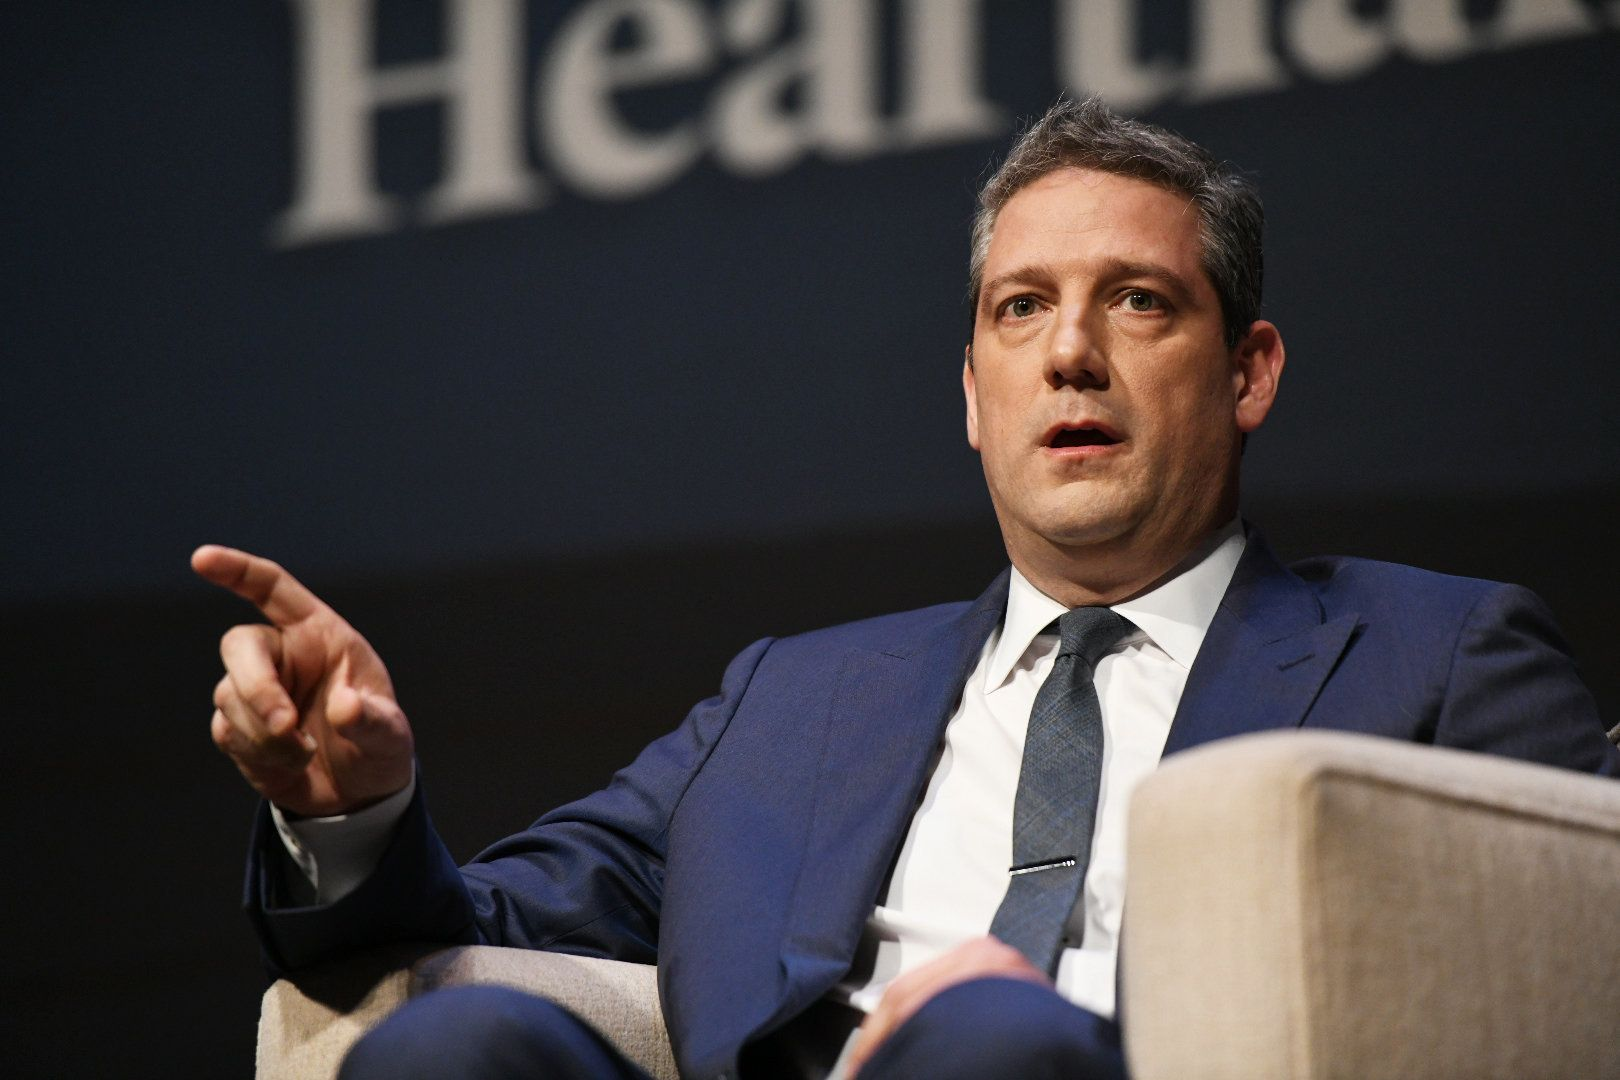 Rep. Tim Ryan (D-Ohio.) takes part in the Heartland Forum.